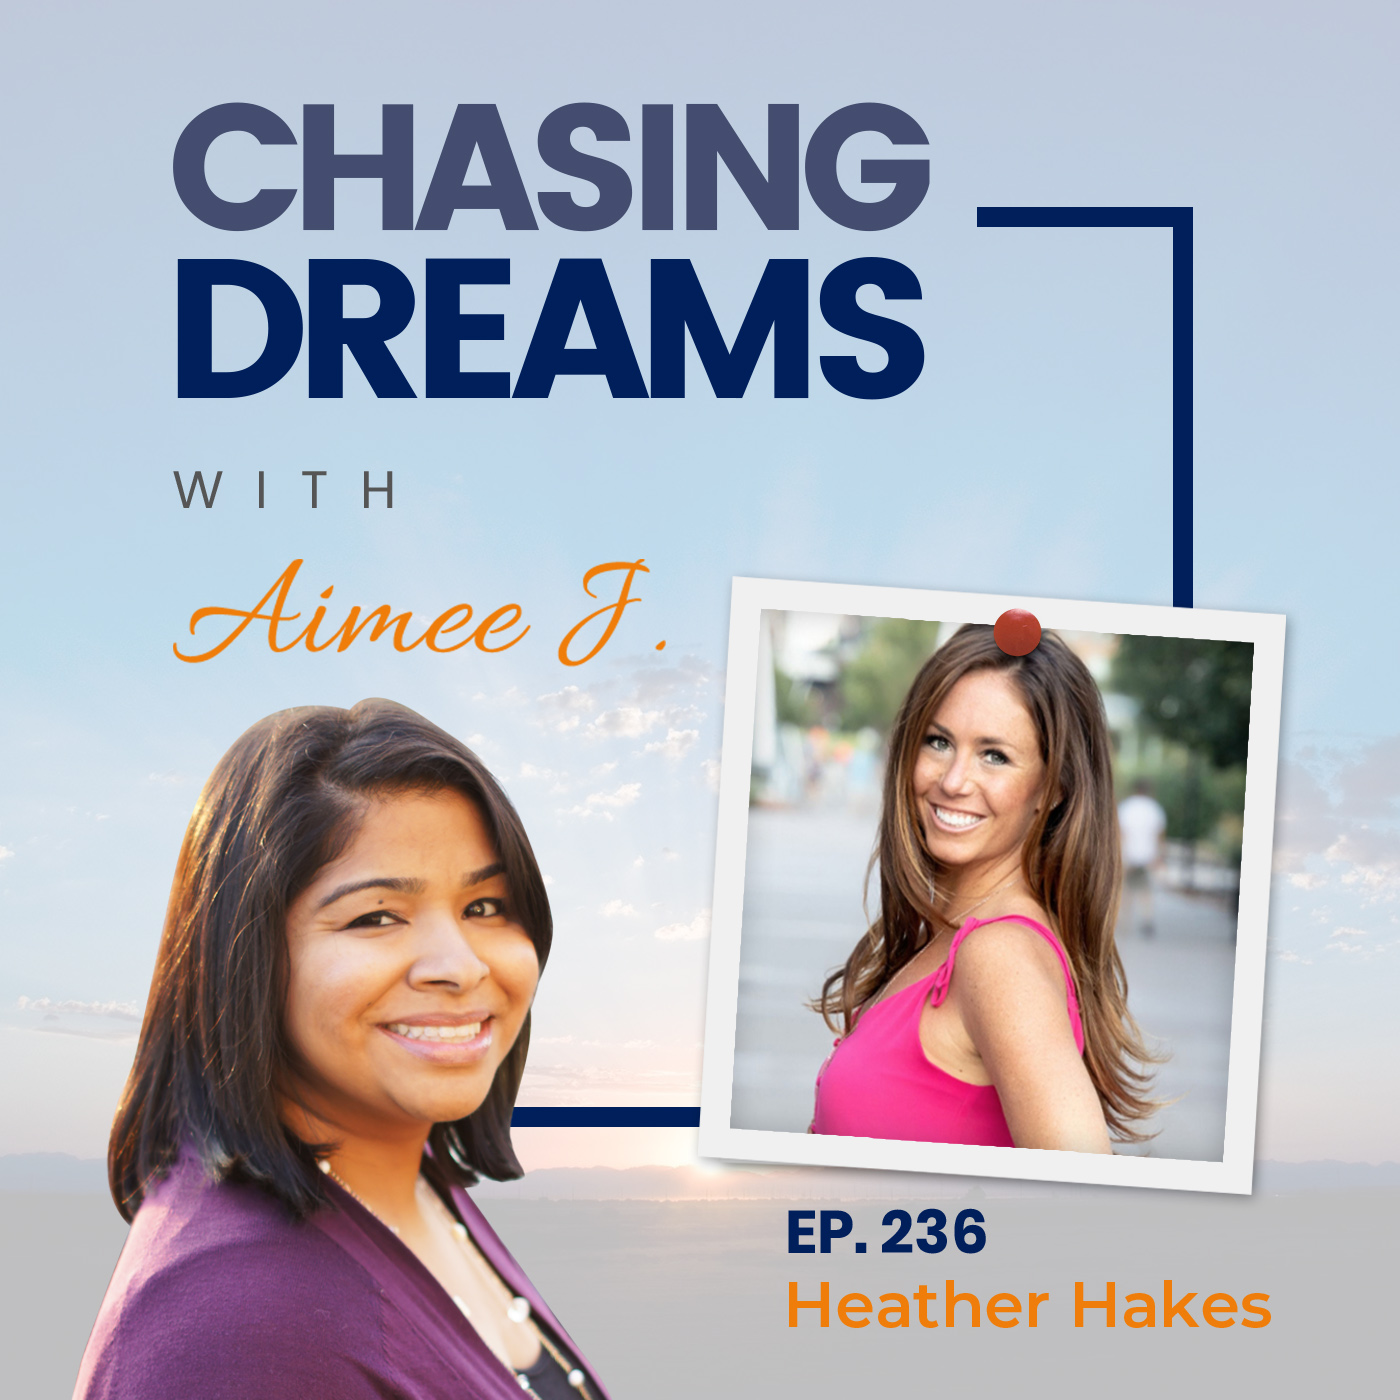 Heather Hakes on Chasing Dreams Podcast with Aimee J